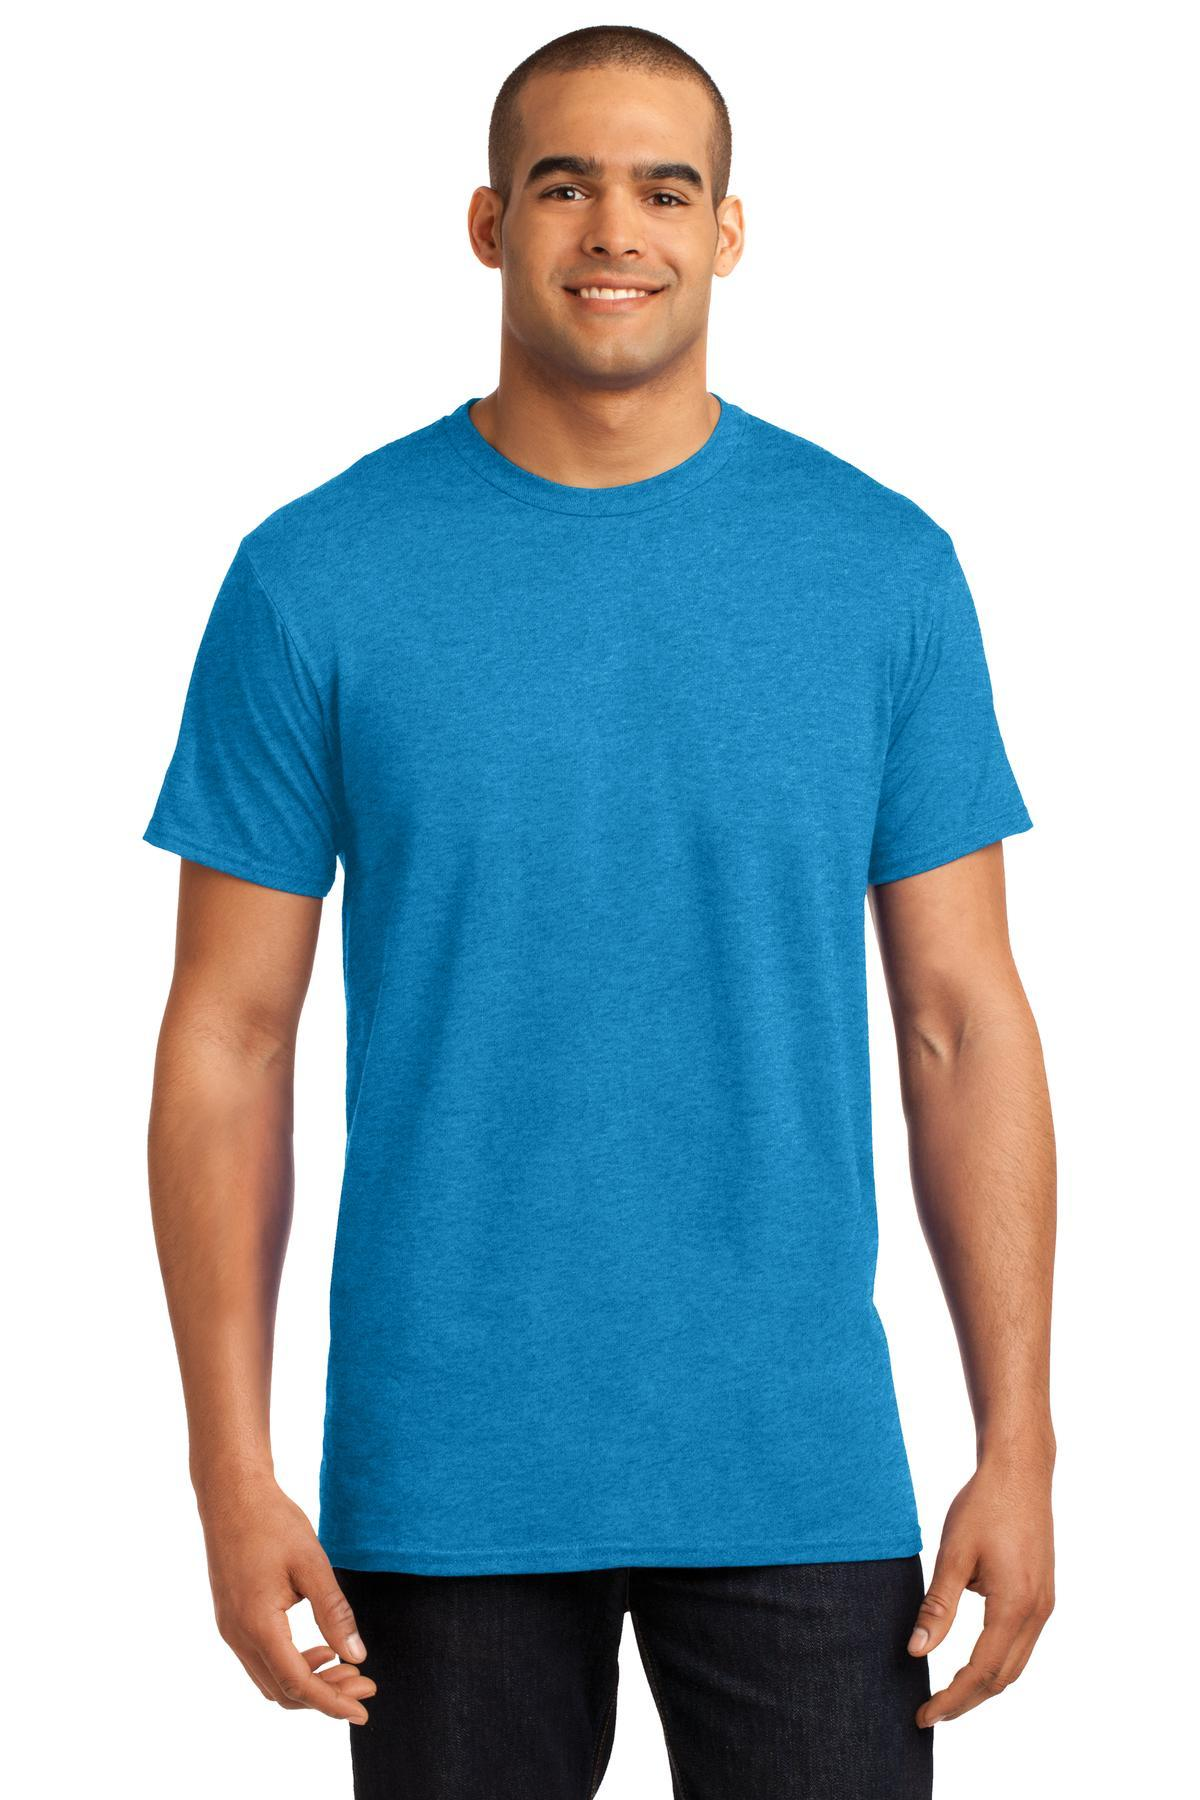 Neon Blue Heather - Hanes 4200